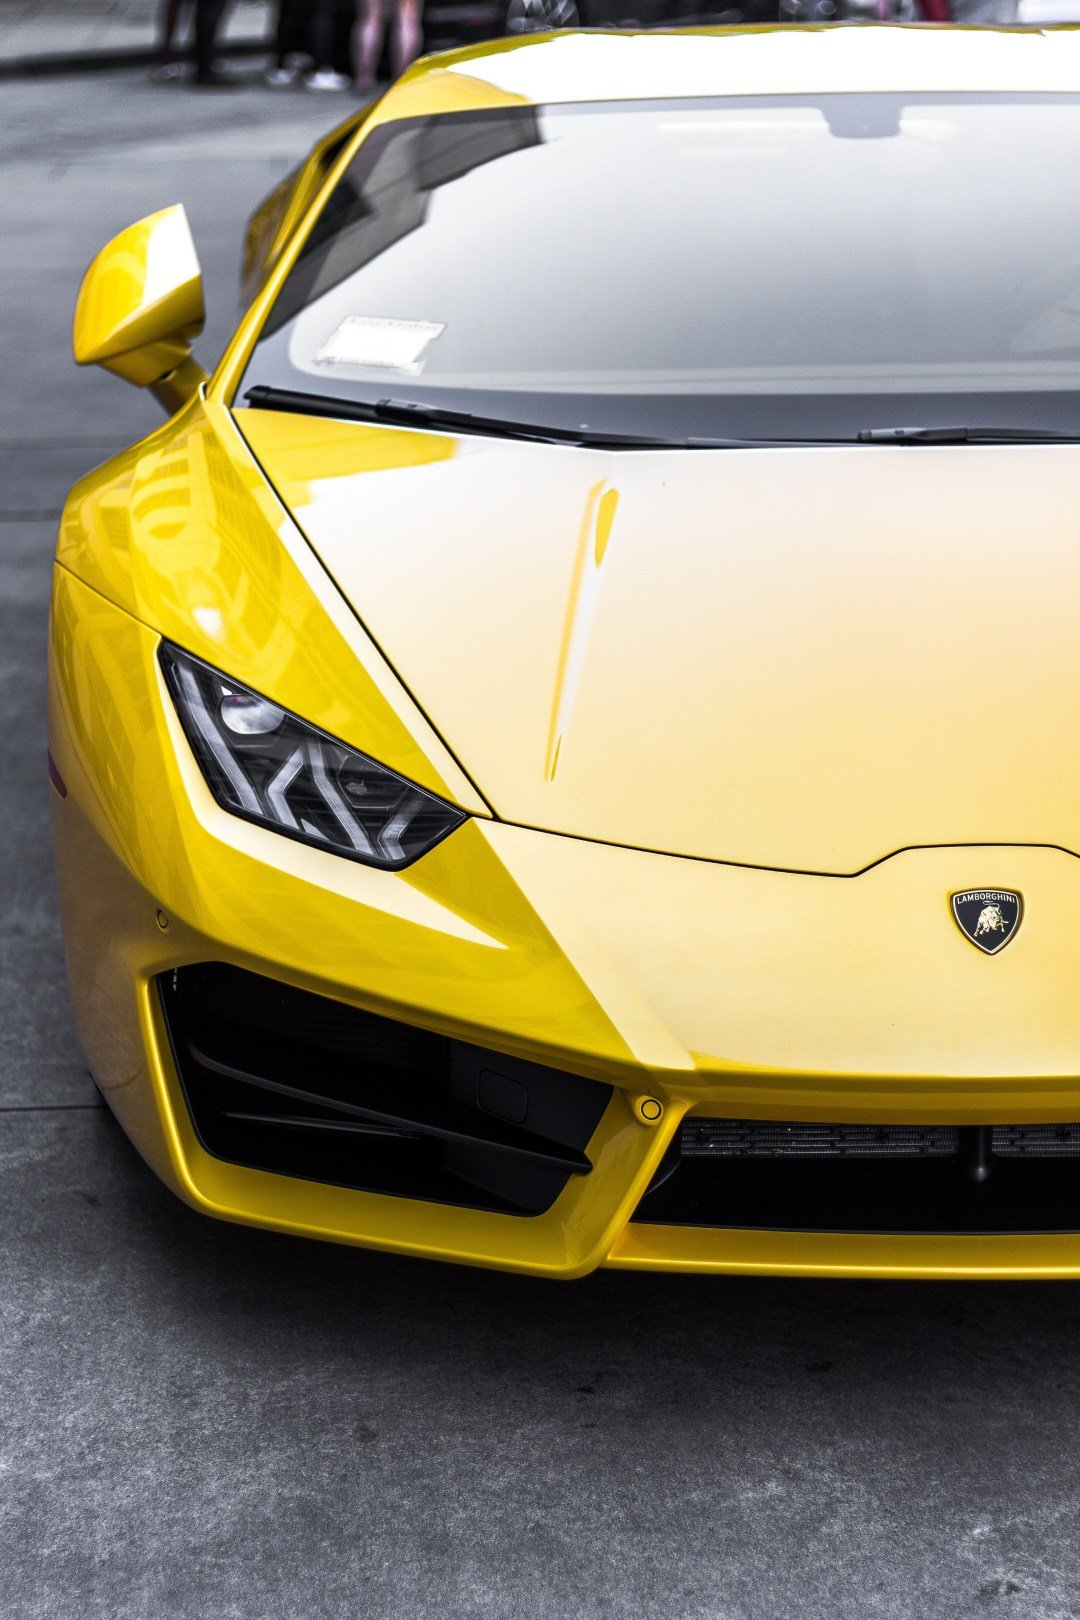 New Car Sports Car Lamborghini And Yellow Hd Photo By Dhiva On This Month